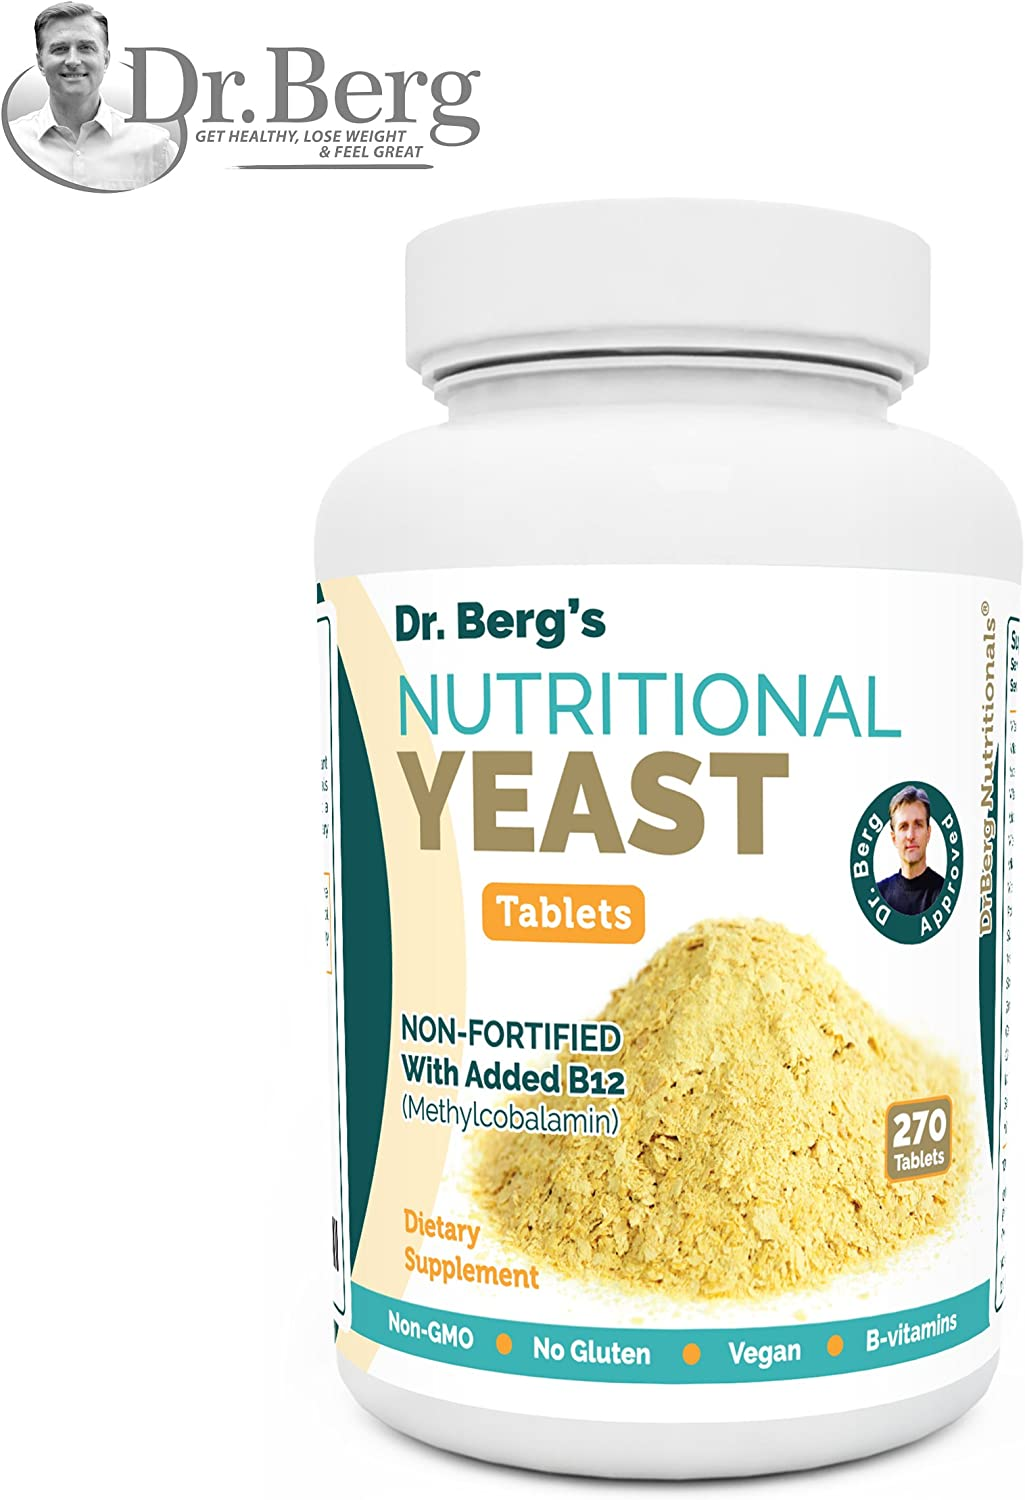 Nutritional Yeast Tablets Non-Fortified B-Vitamin Complex Natural B12 Added 270 Tablets No Gluten Vegan Non-GMO Non Synthetics